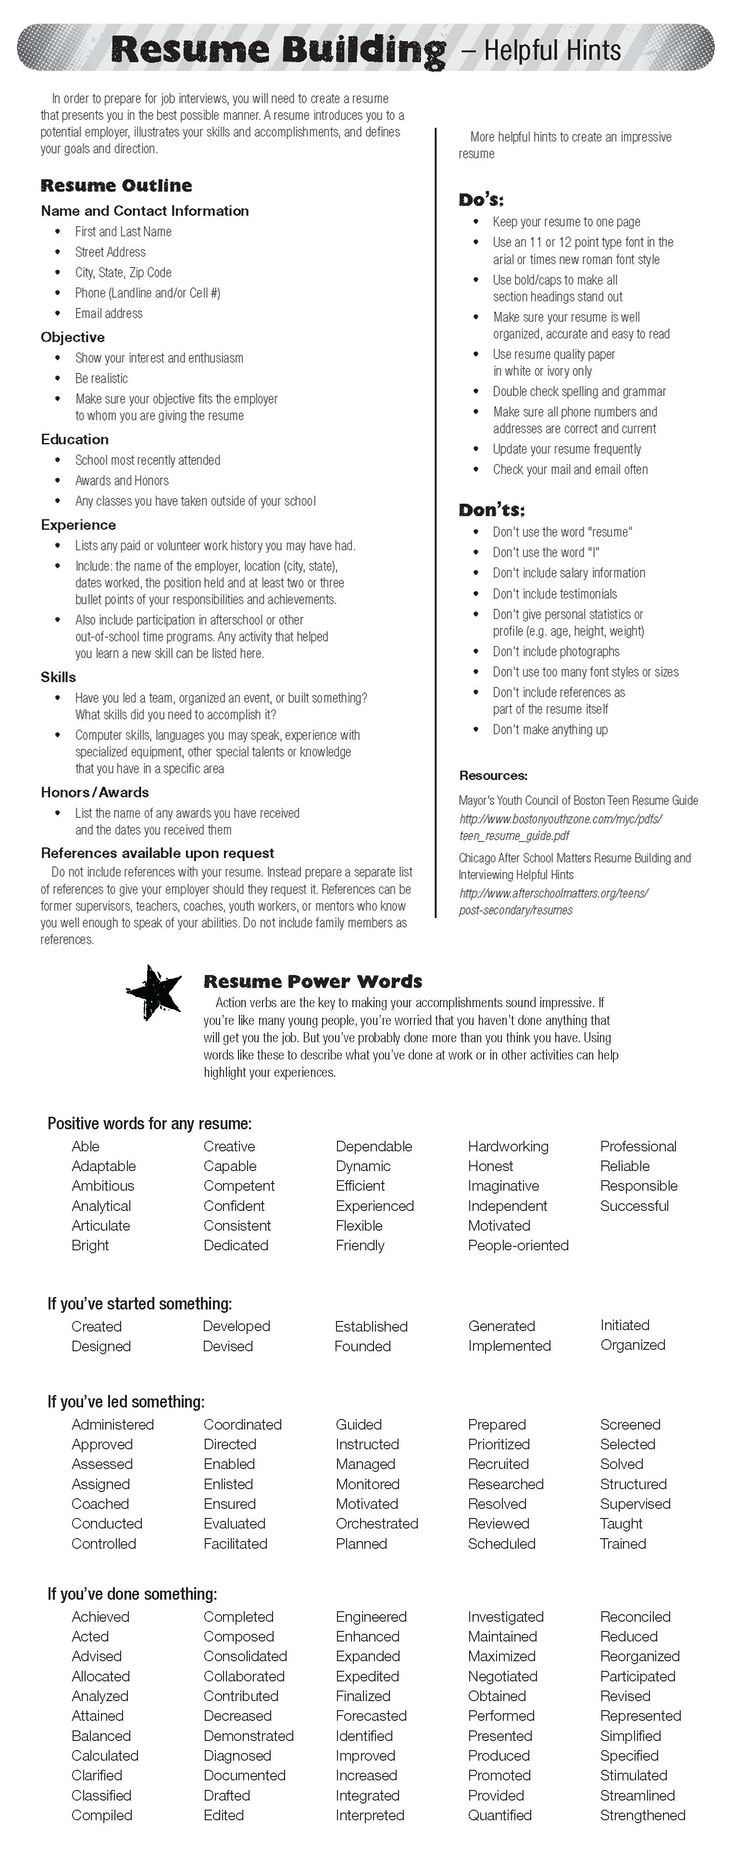 Opposenewapstandardsus  Splendid  Ideas About Resume On Pinterest  Cv Format Resume Cv And  With Great  Ideas About Resume On Pinterest  Cv Format Resume Cv And Resume Templates With Attractive How To Do A Resume Paper Also Project Management Resume Samples In Addition Office Assistant Job Description Resume And Payroll Clerk Resume As Well As Software Resume Additionally Professional Resume Paper From Pinterestcom With Opposenewapstandardsus  Great  Ideas About Resume On Pinterest  Cv Format Resume Cv And  With Attractive  Ideas About Resume On Pinterest  Cv Format Resume Cv And Resume Templates And Splendid How To Do A Resume Paper Also Project Management Resume Samples In Addition Office Assistant Job Description Resume From Pinterestcom